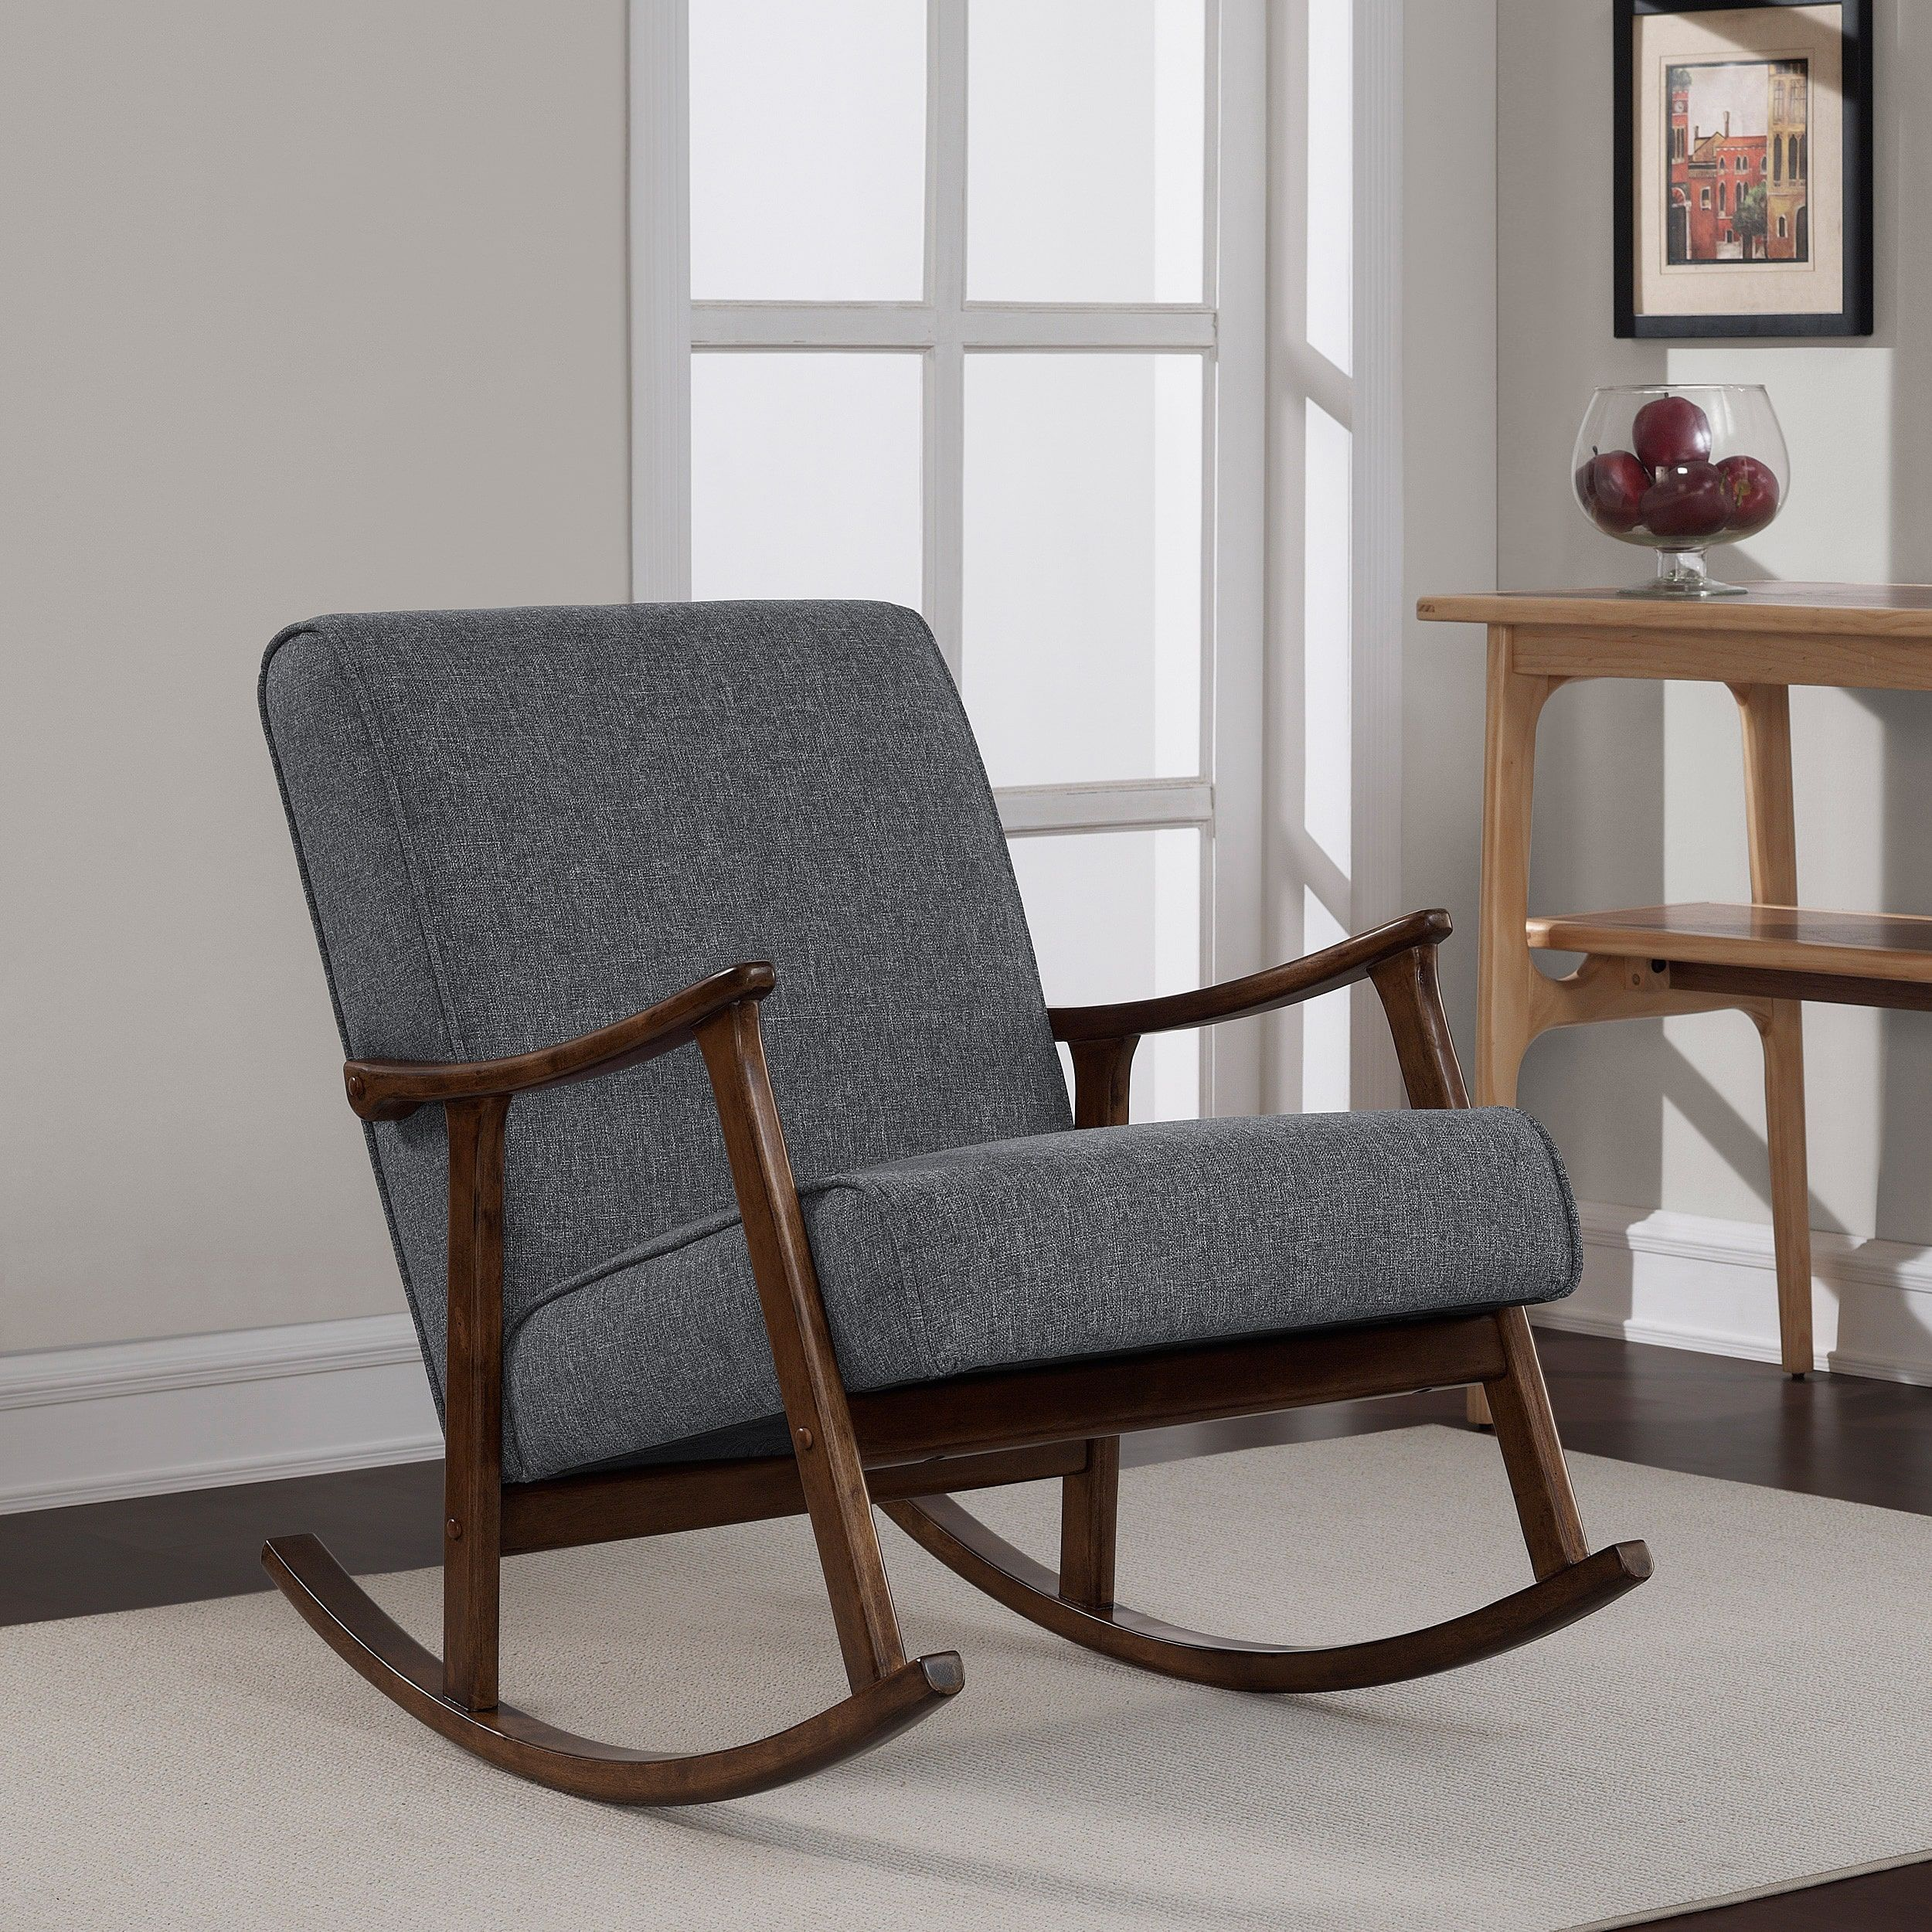 Bon Granite Grey Fabric Mid Century Wooden Rocking Chair | Overstock.com  Shopping   The Best Deals On Living Room Chairs